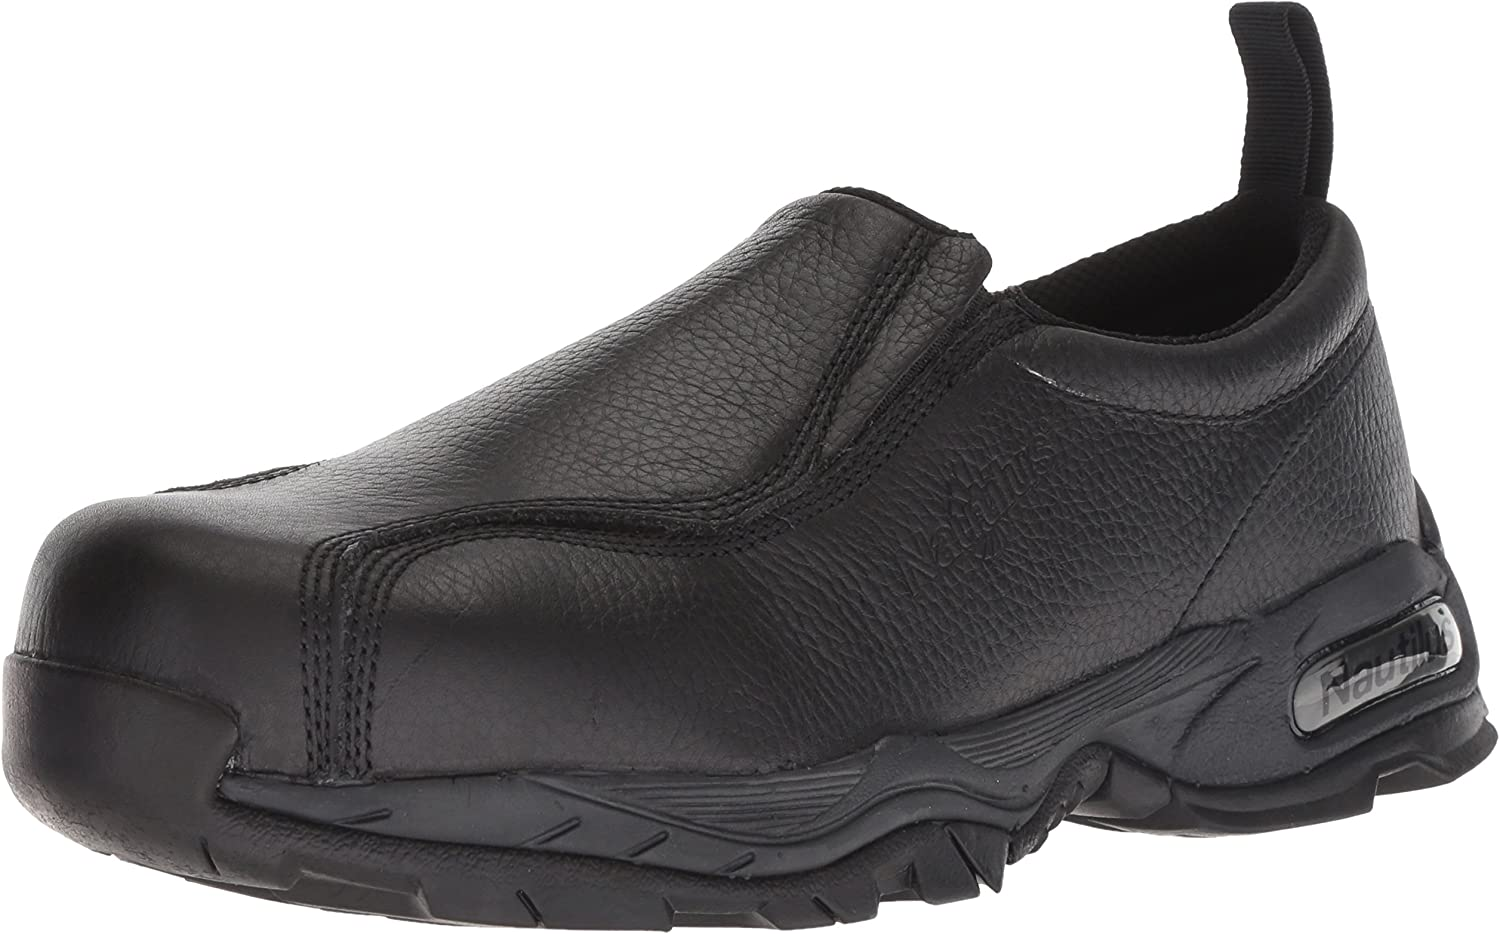 Nautilus Men's 1630 Steel Toe Slip-on